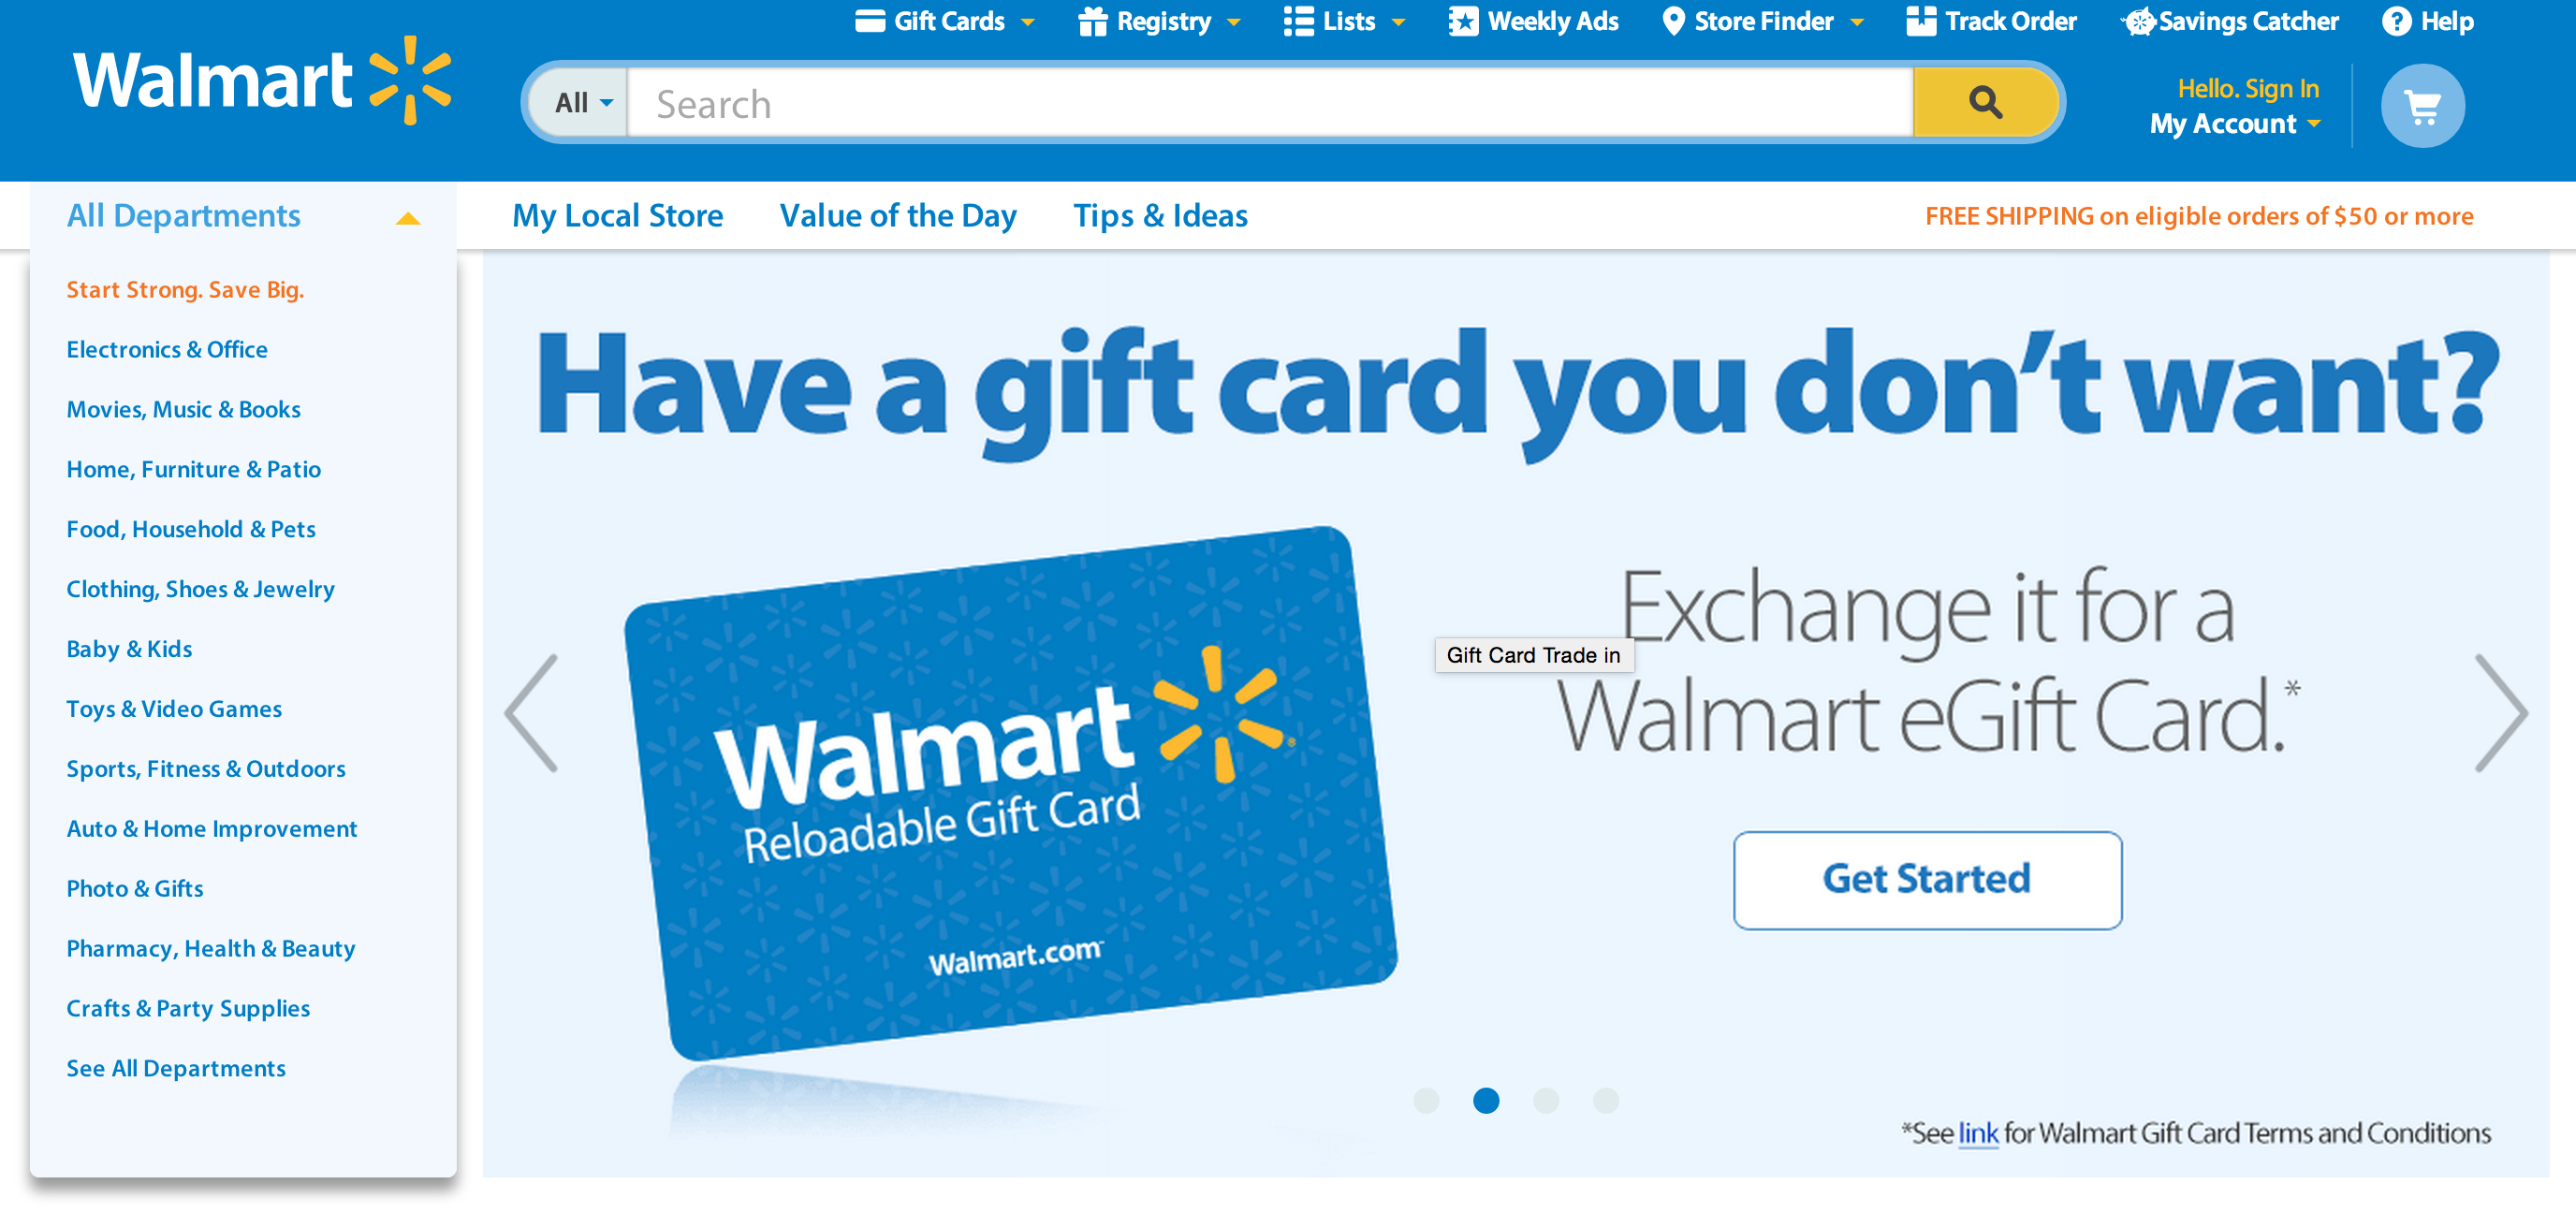 Walmart's New Site Allows Consumers To Exchange Unwanted Gift Cards